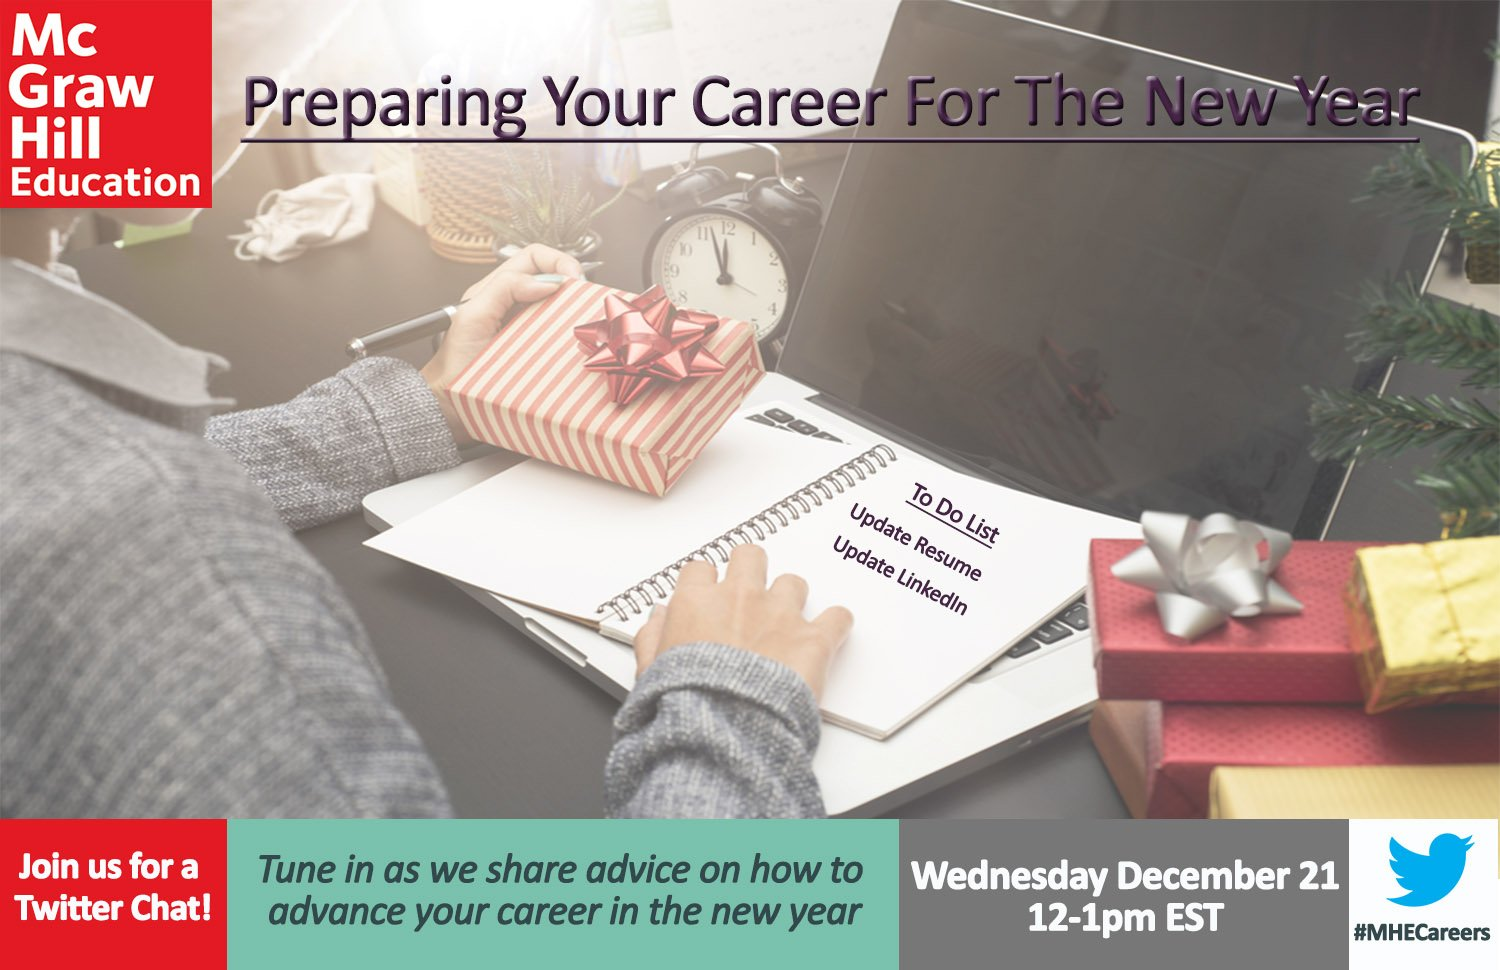 Thumbnail for #MHECareers: Preparing Your Career for the New Year